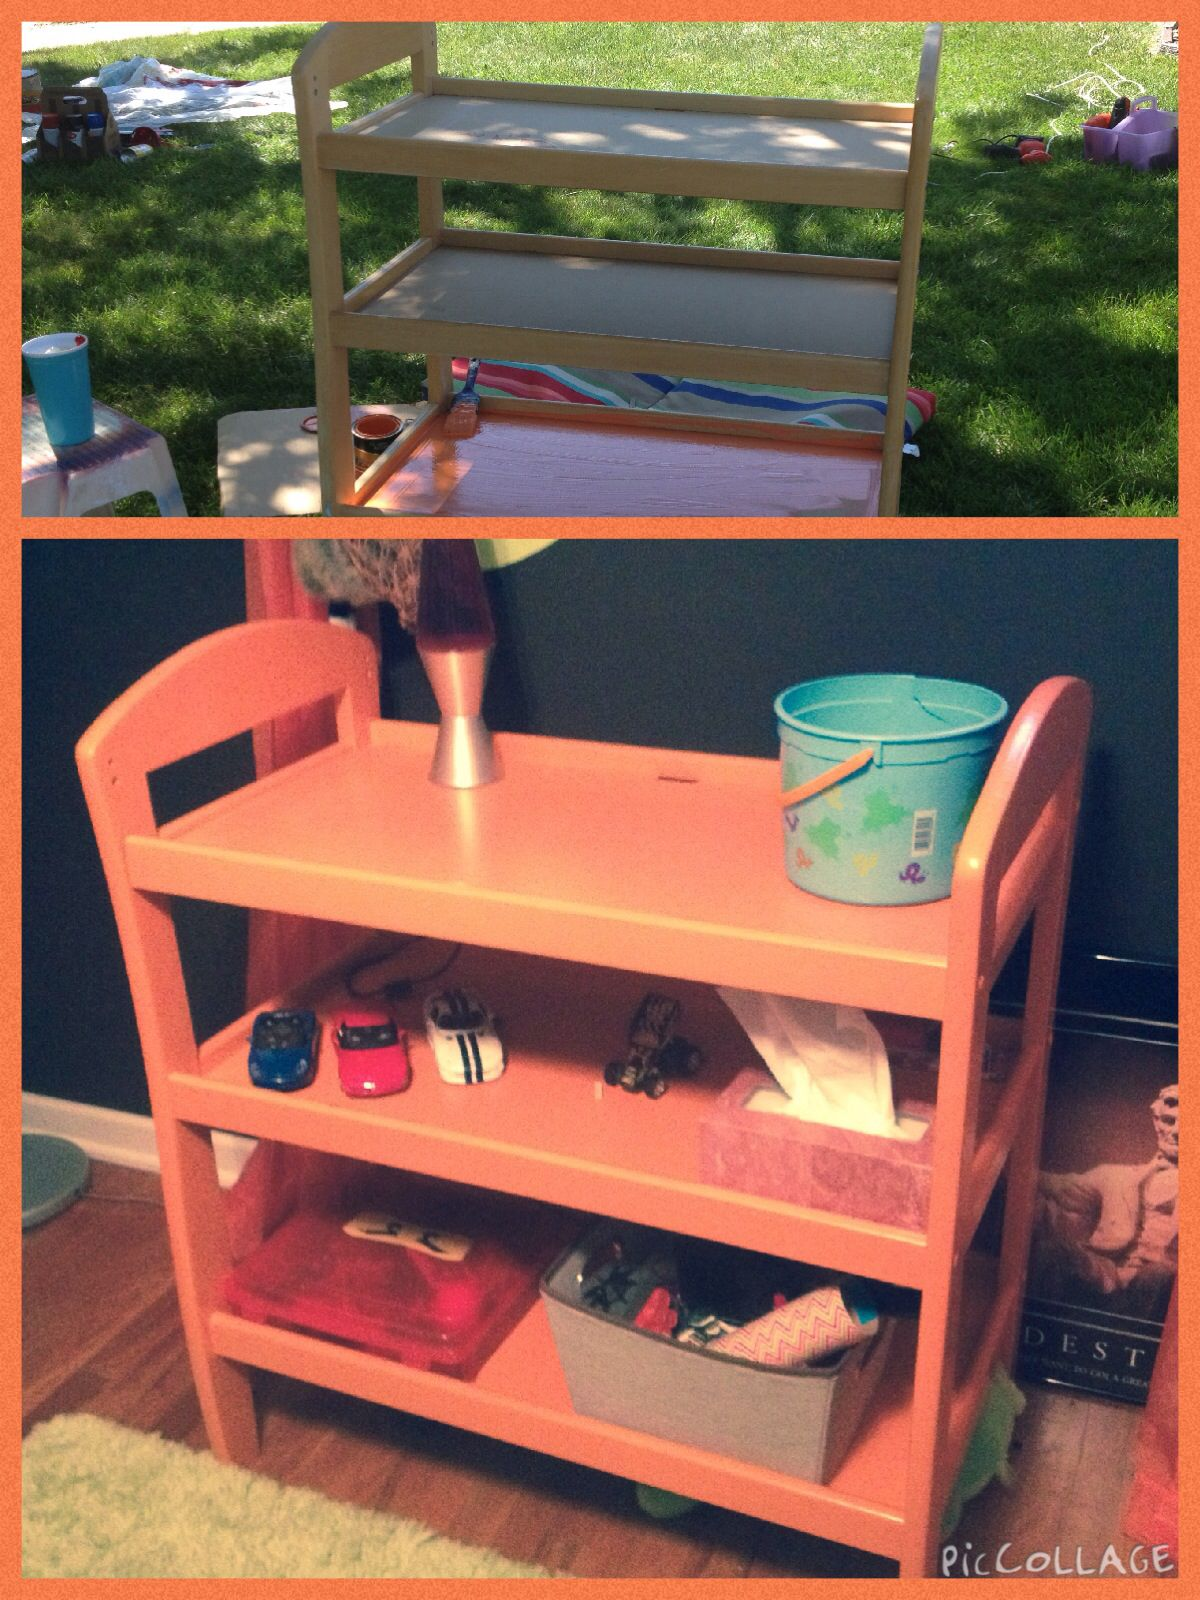 $10 diaper changing table upcycled into an orange Lego Table!